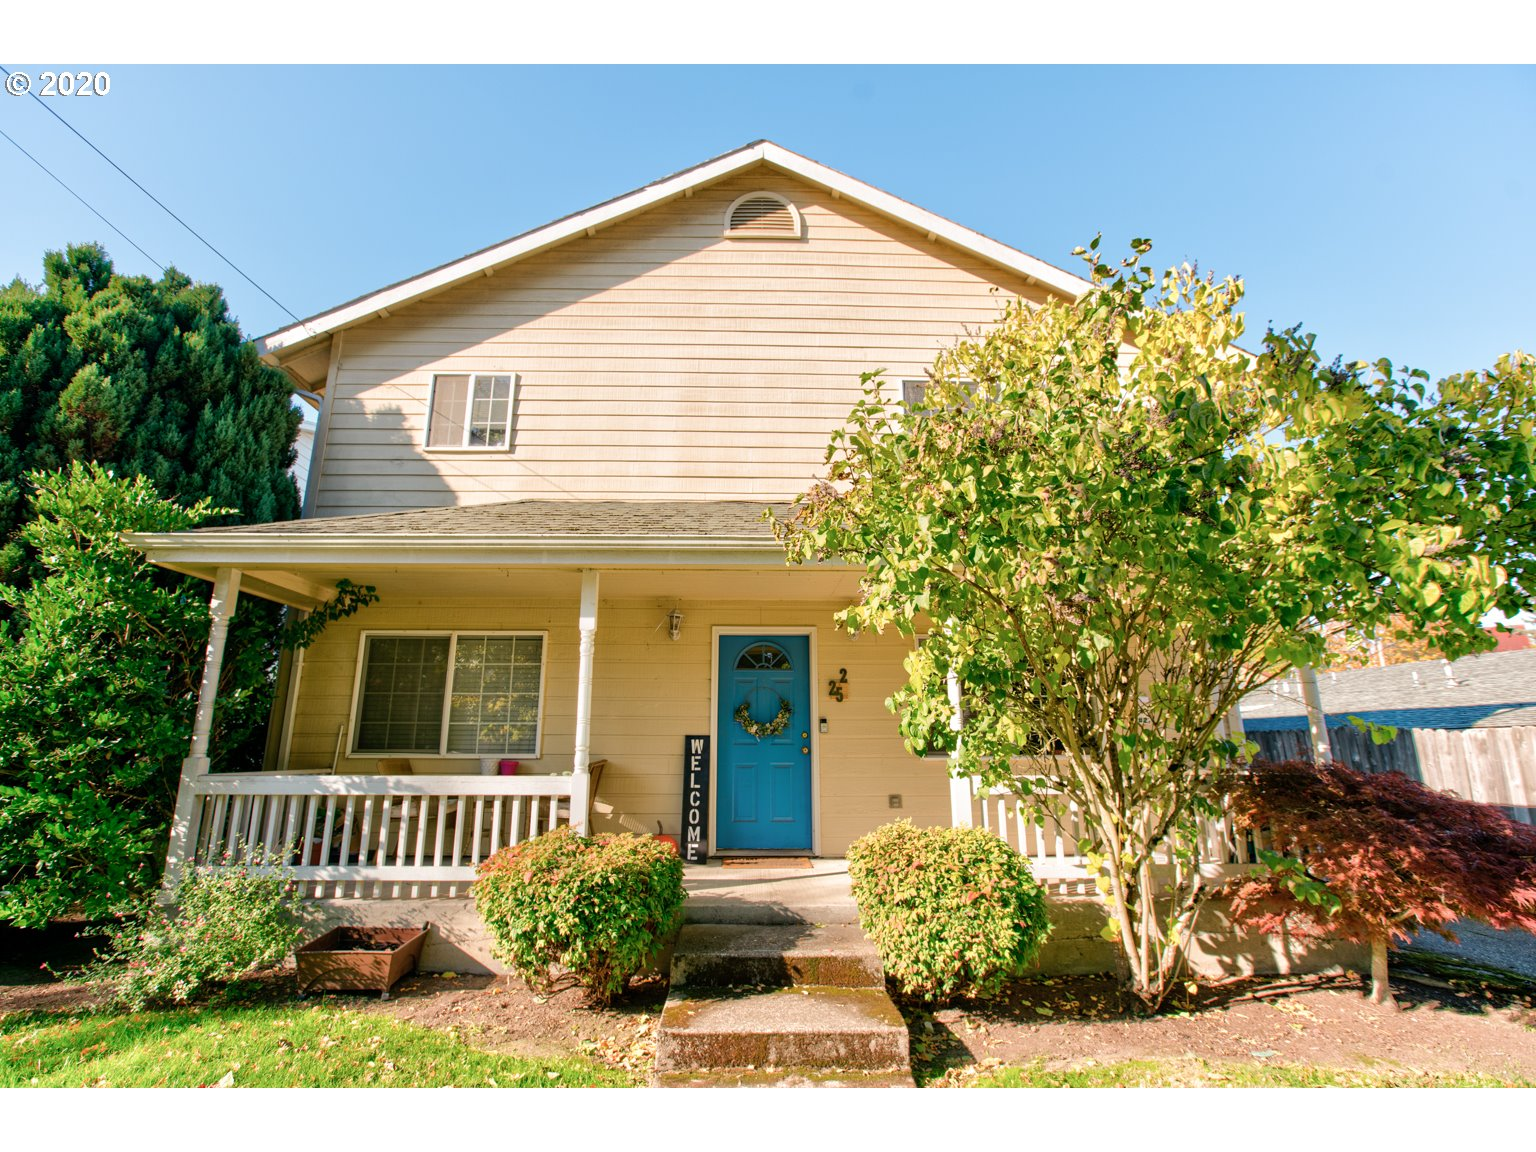 This charming duplex, located in the quaint town of Monmouth, Oregon, has a pair of updated two-bedroom, two-bath apartments. Built in 1937, the farmhouse was converted to a duplex in 1992 and has had a stable rental history ever since. Each unit features a large kitchen and living room, in-unit washer and dryer, and off-street parking. Residents enjoy the classic front porch as well as its close proximity to Western Oregon University, Main Street Park, and Monmouth's historic downtown.